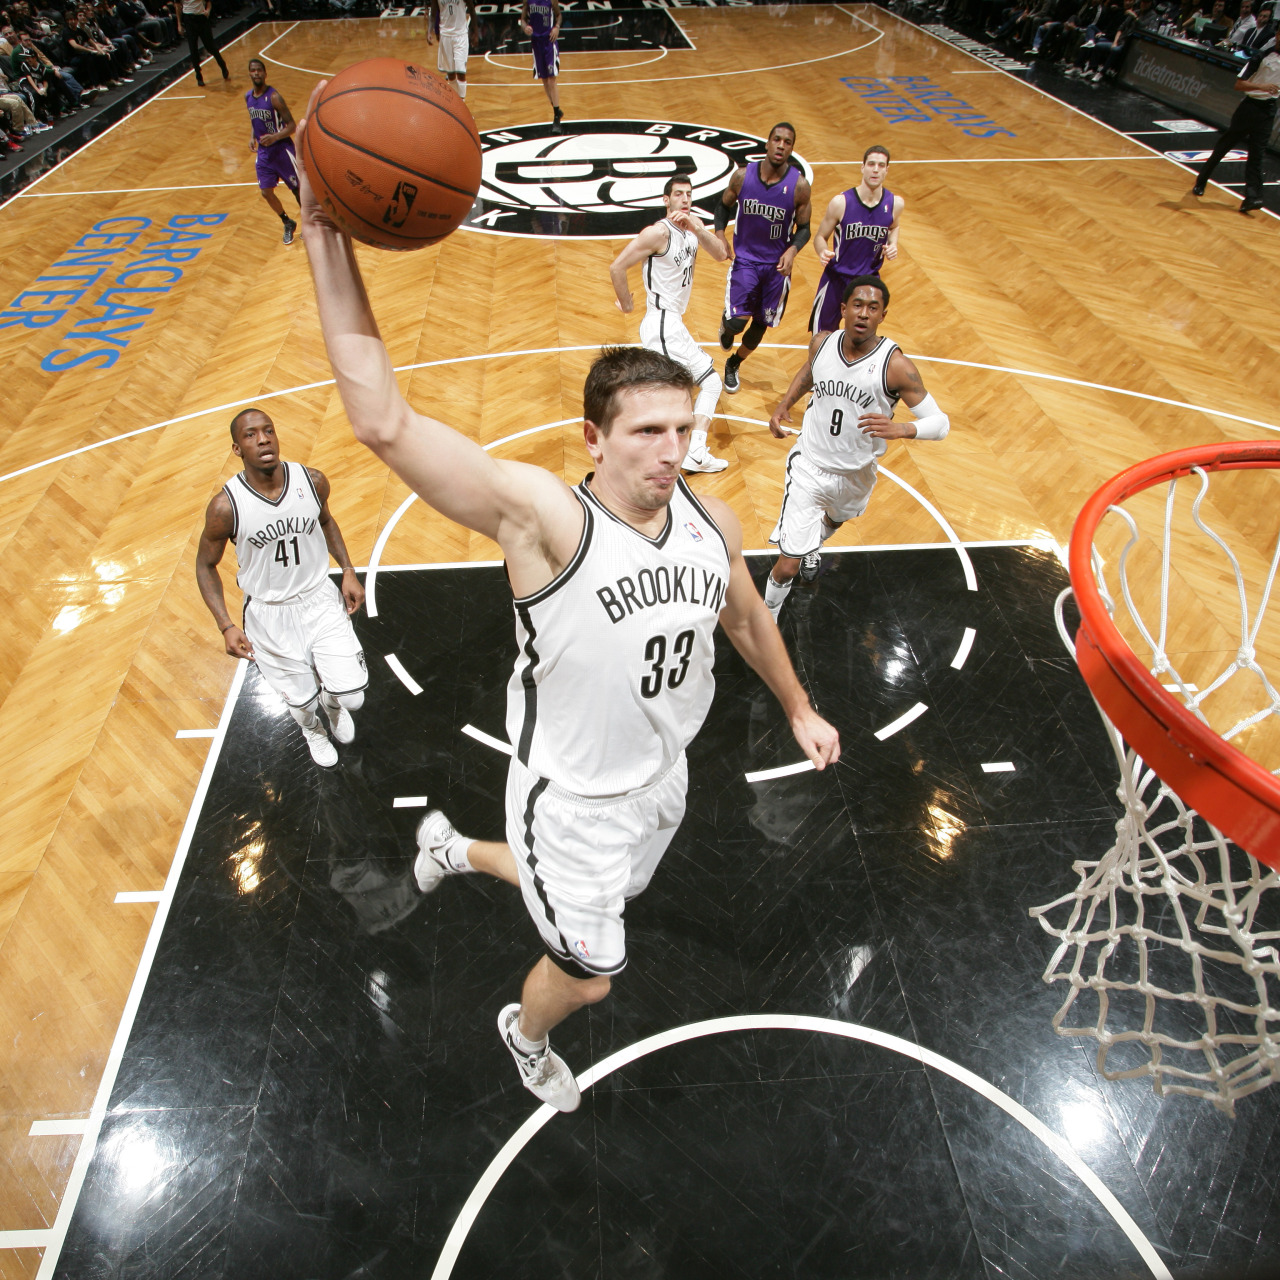 Mirza Teletovic is living out his dream of playing in the NBA, but it was no easy road to Brooklyn. WATCH the latest webisode of 'The Association' and learn how his upbringing in Bosnia Herzegovina helped to mold the player and person that he is today:http://on.nba.com/Vr5UZv